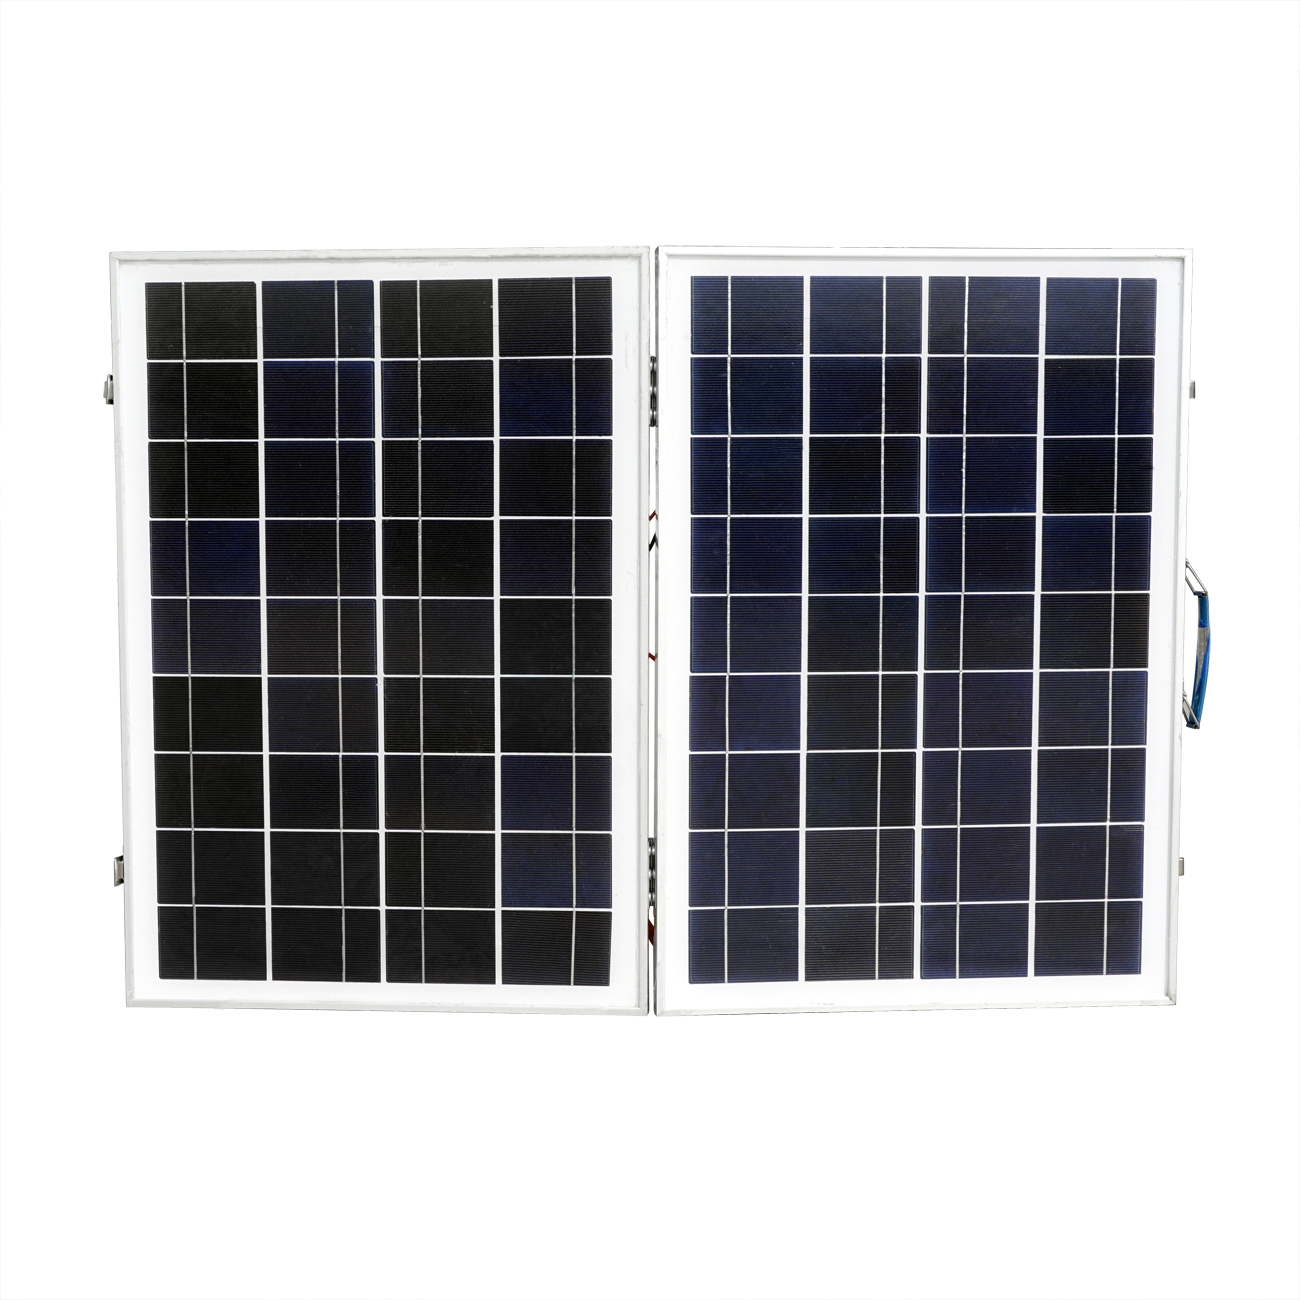 50W 18V Poly Folding Foldable Solar Panel for 12v Battery Car RV Camping Boat Solar Generators portable outdoor 18v 30w portable smart solar power panel car rv boat battery bank charger universal w clip outdoor tool camping